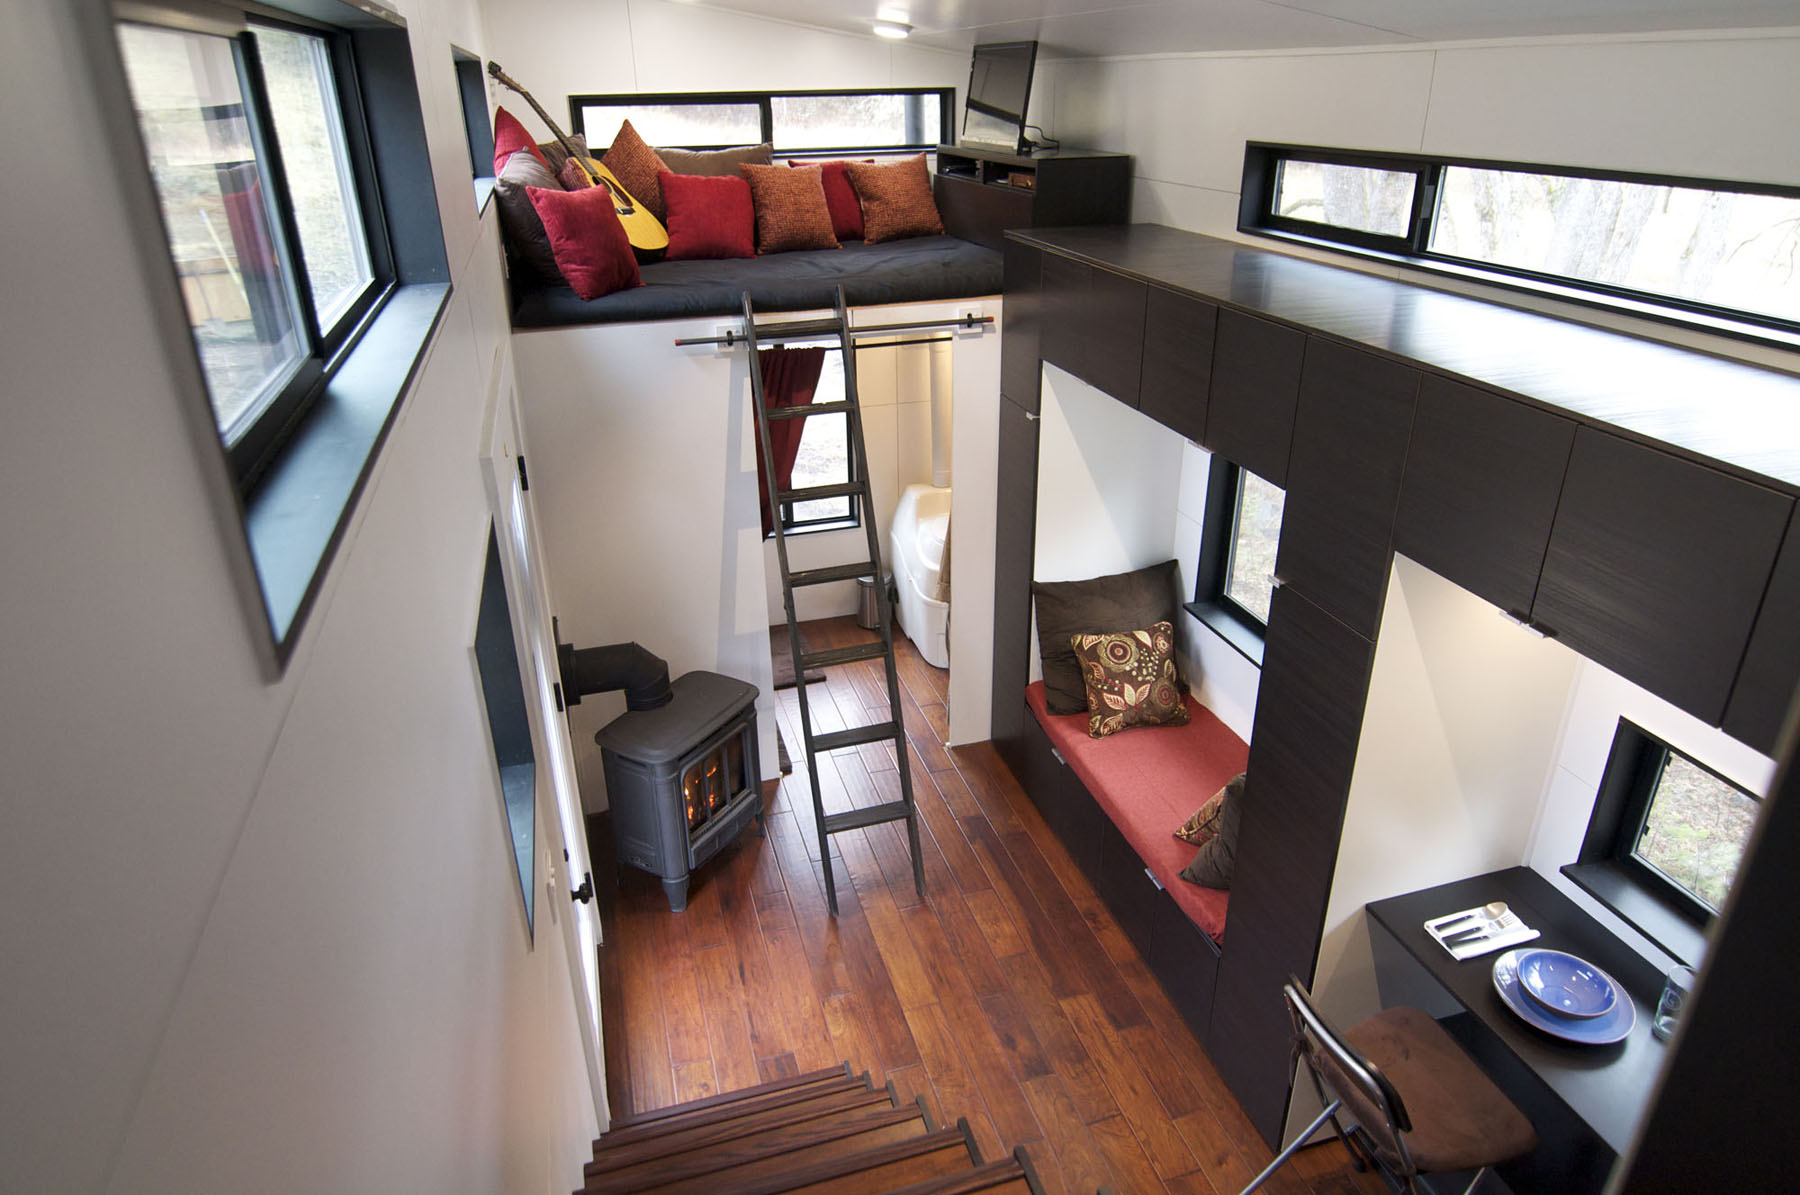 Spacious and Elegant Tiny Home